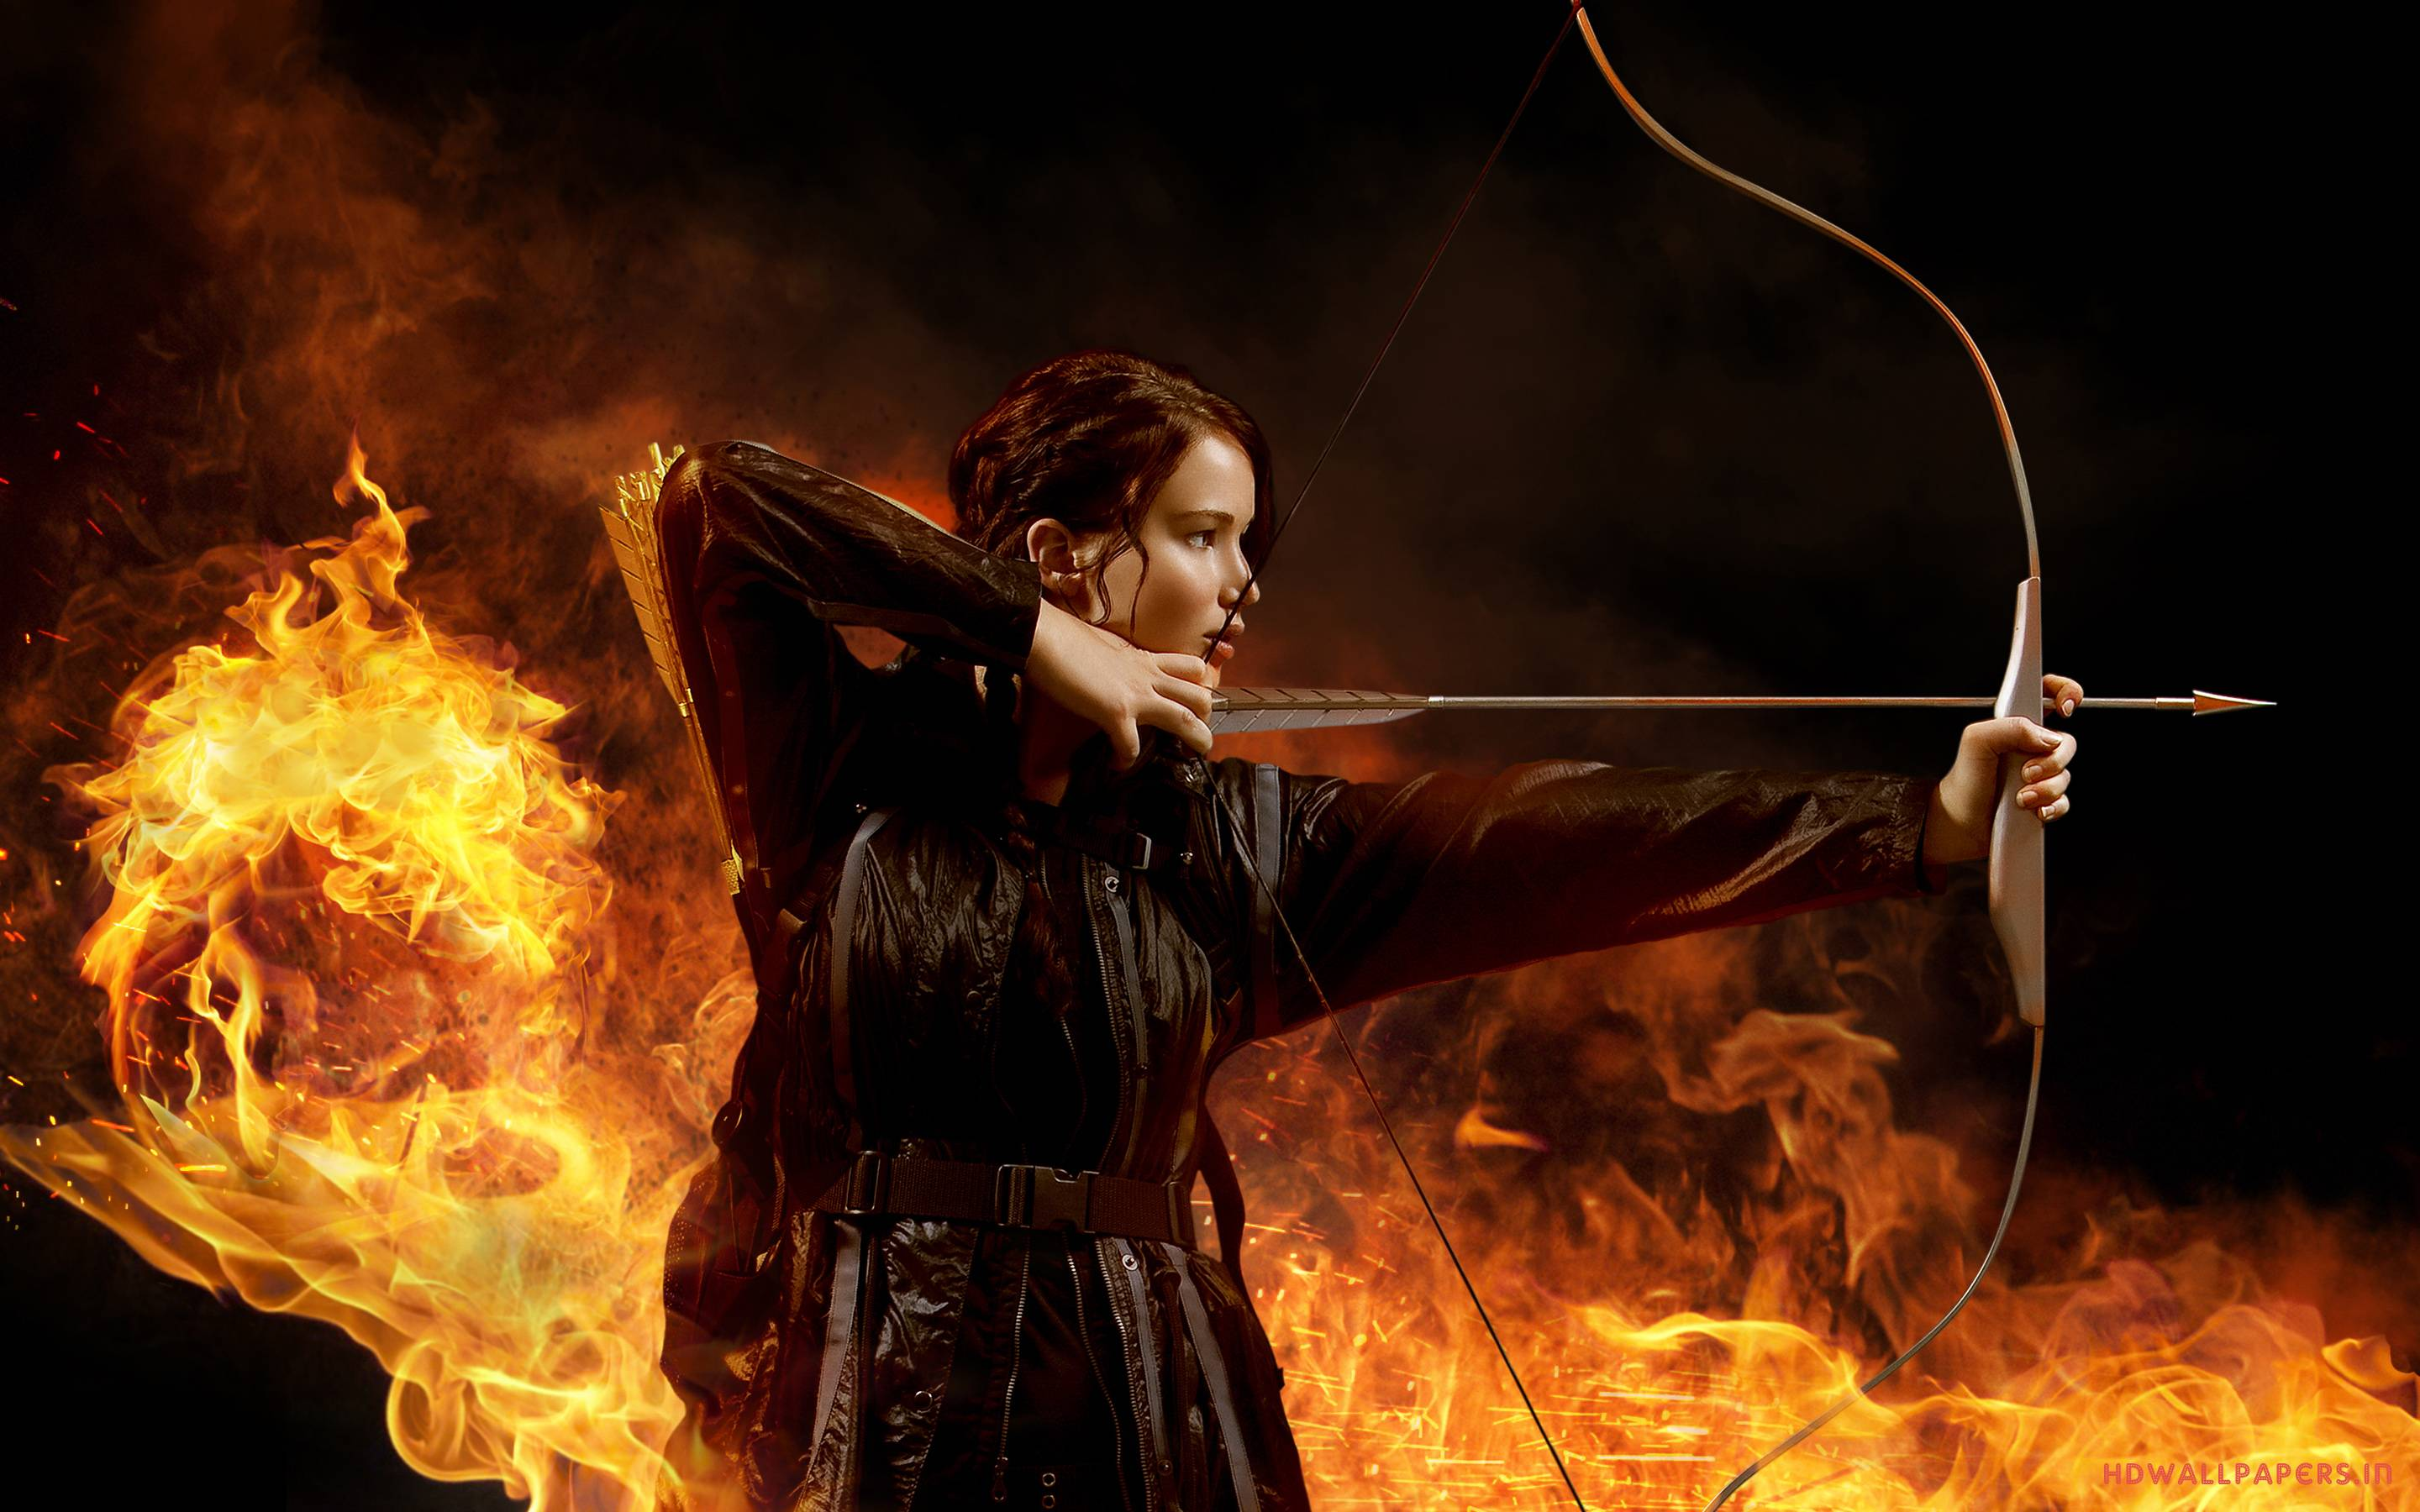 hunger games movie wallpapers - photo #2